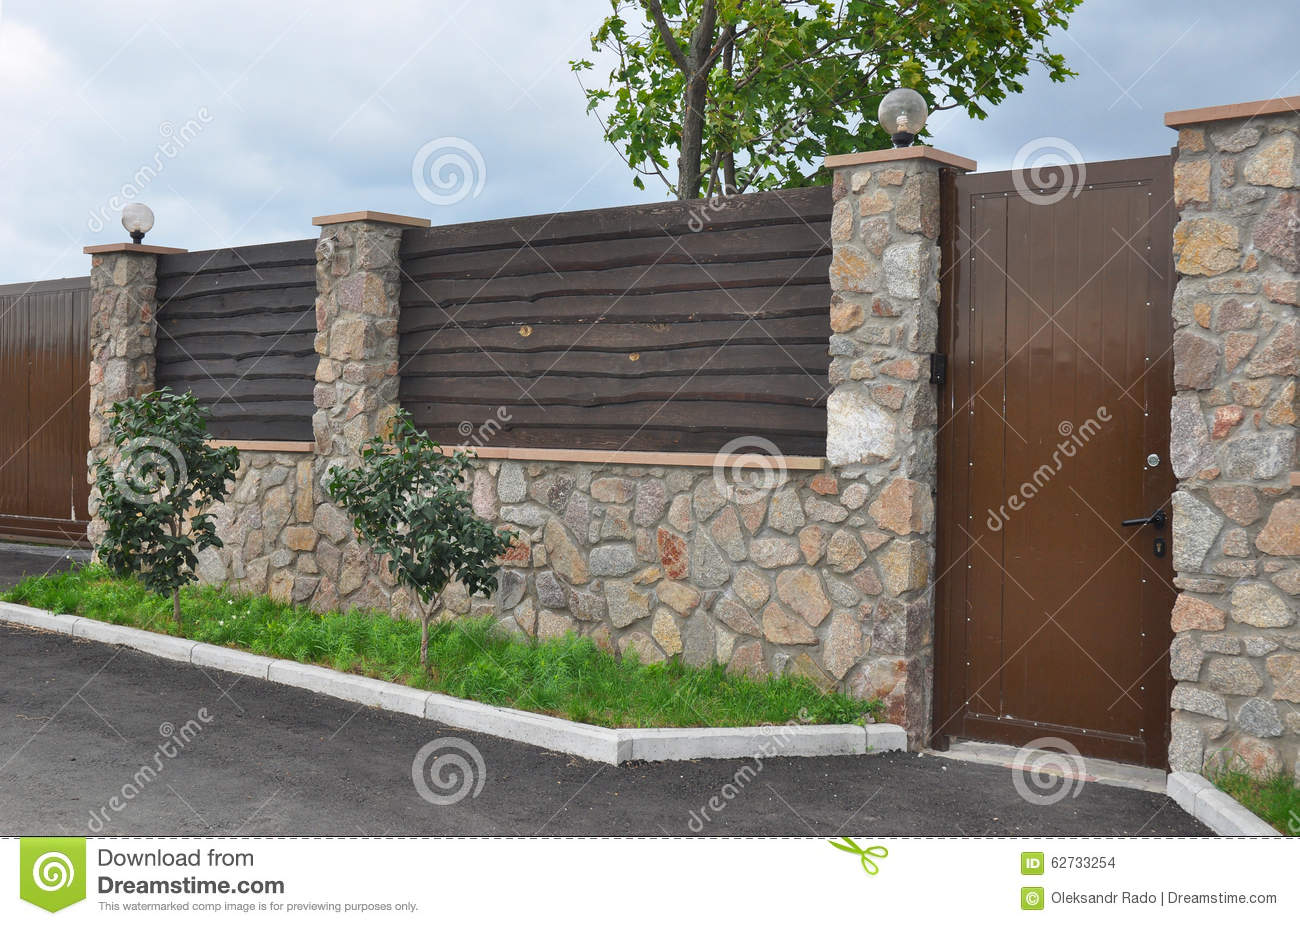 Stone and Metal Fence with Door of Modern Style Design Decorative Cracked Real Stone Wall